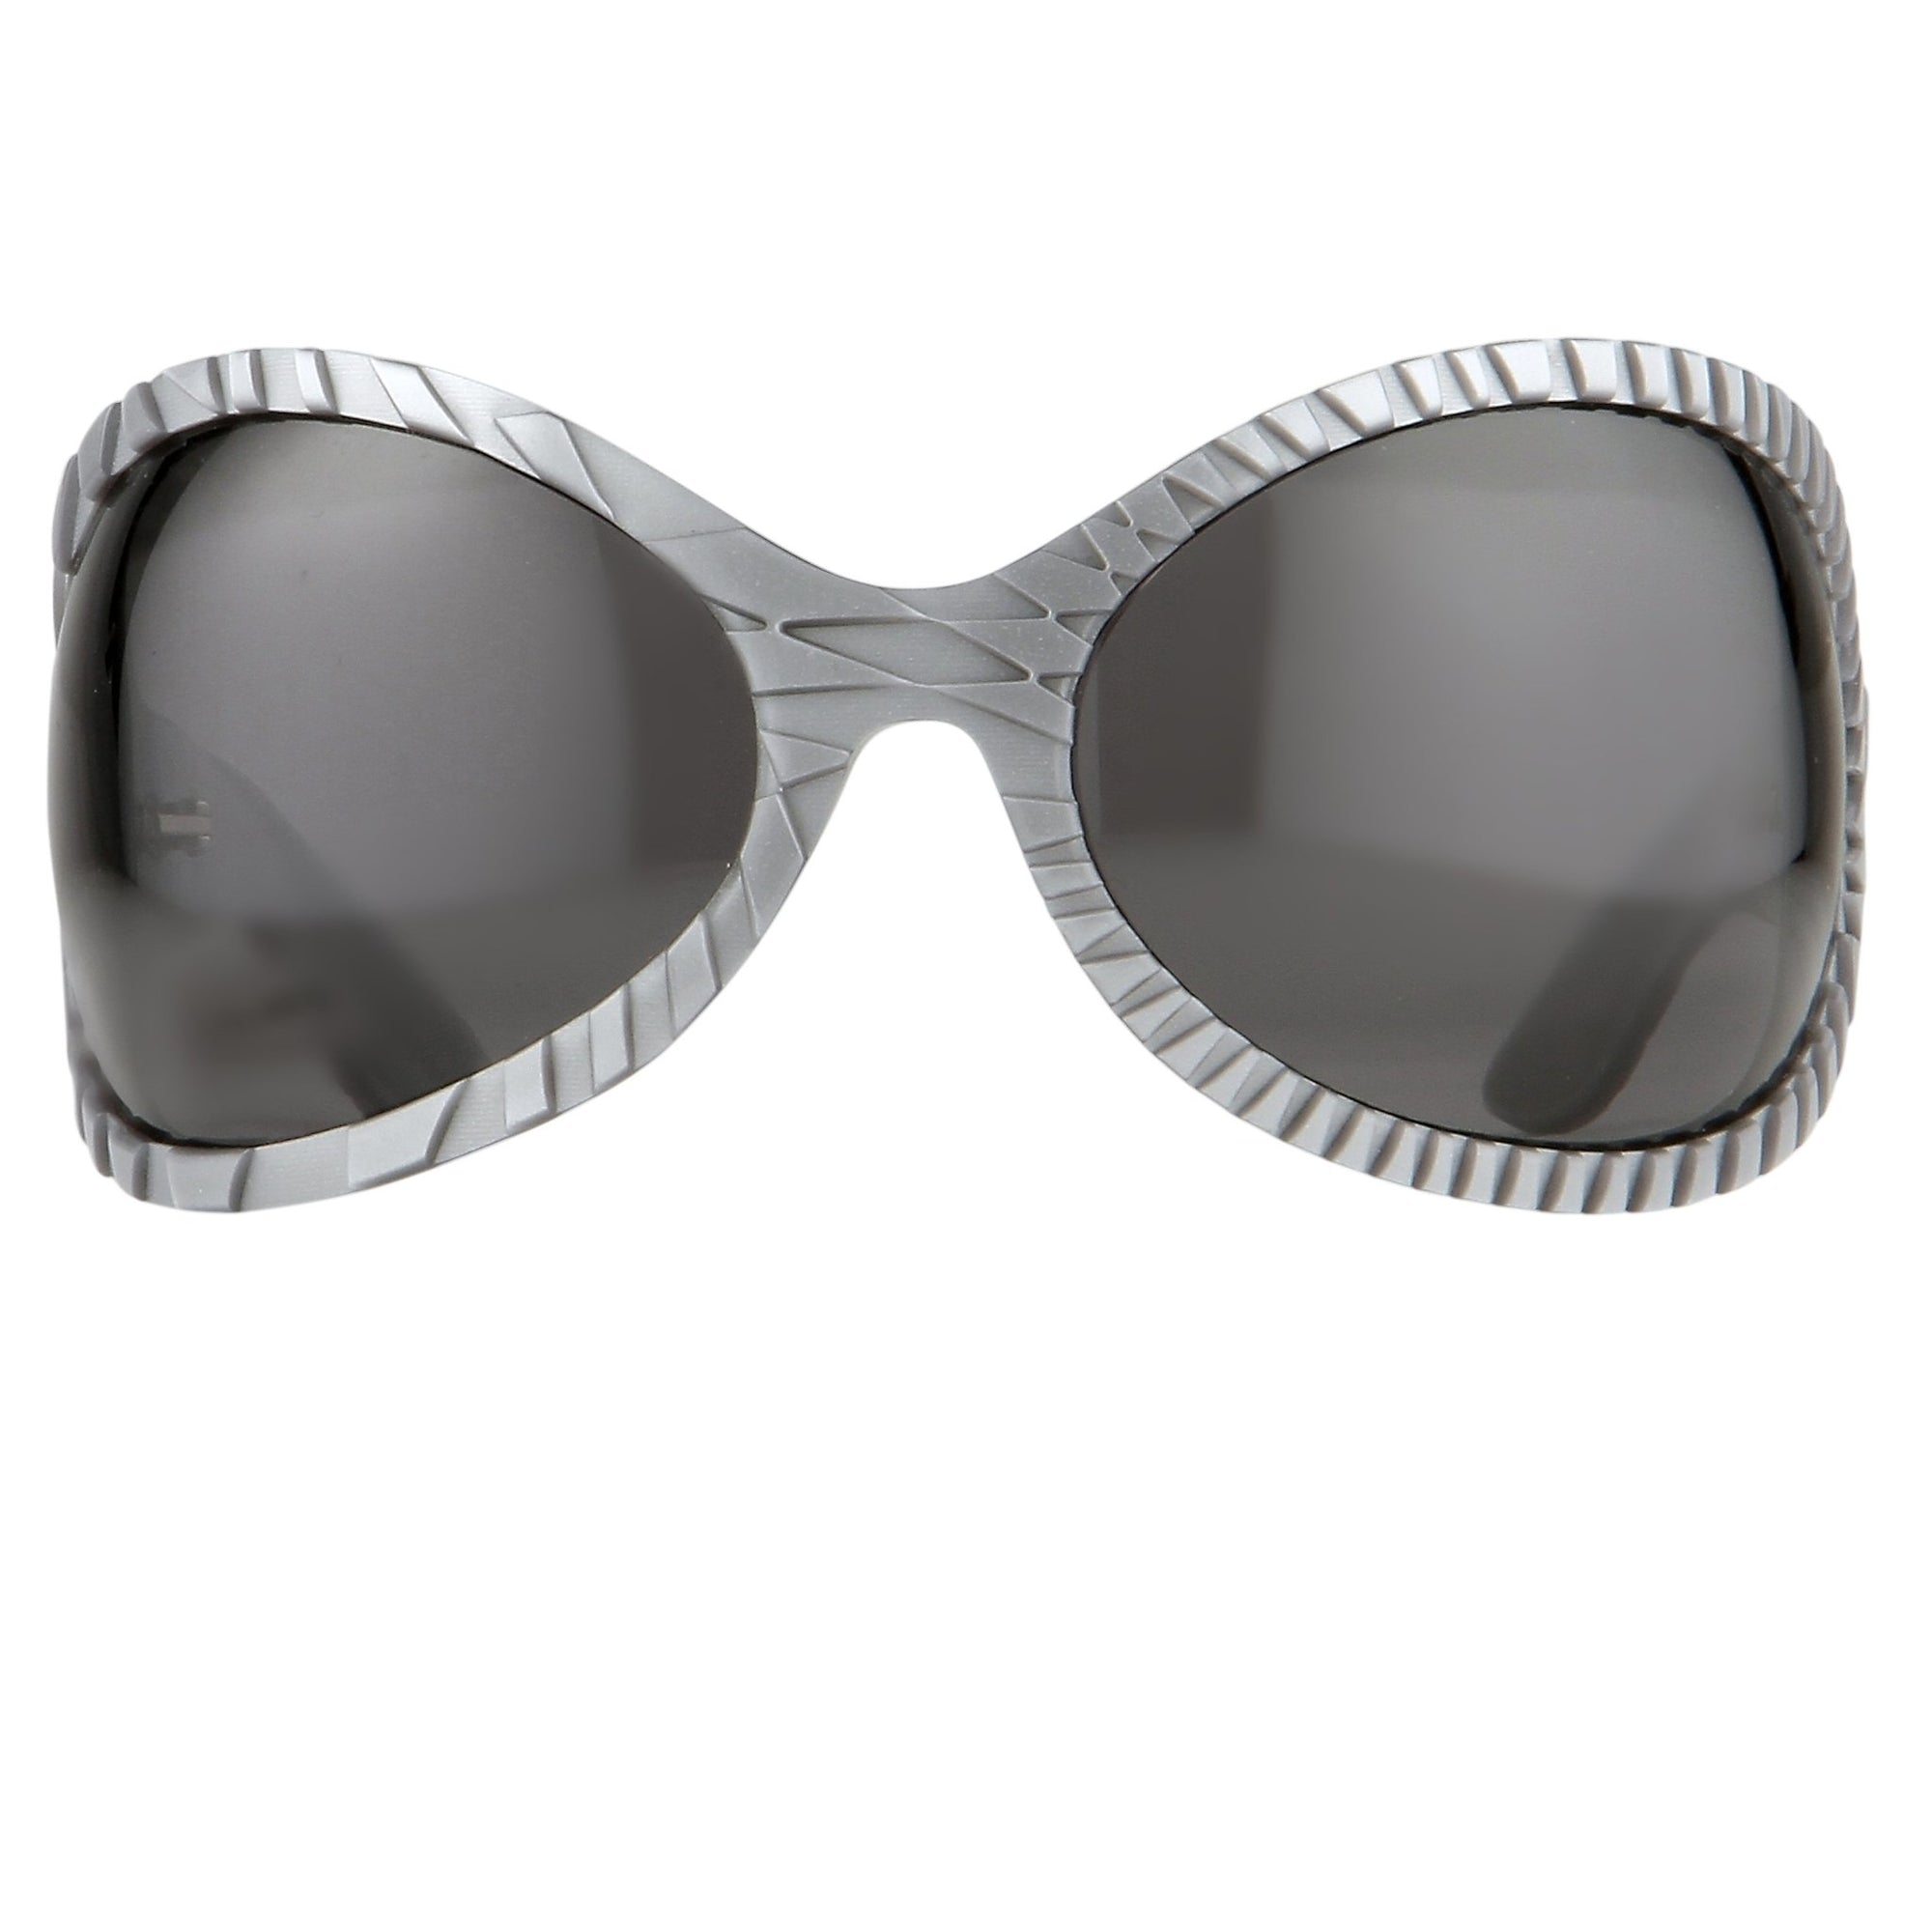 Jeremy Scott Sunglasses Wrap Around Silver Pattern With Silver Mirror Category 3 Lenses JSWRAPC5SUN - Watches & Crystals